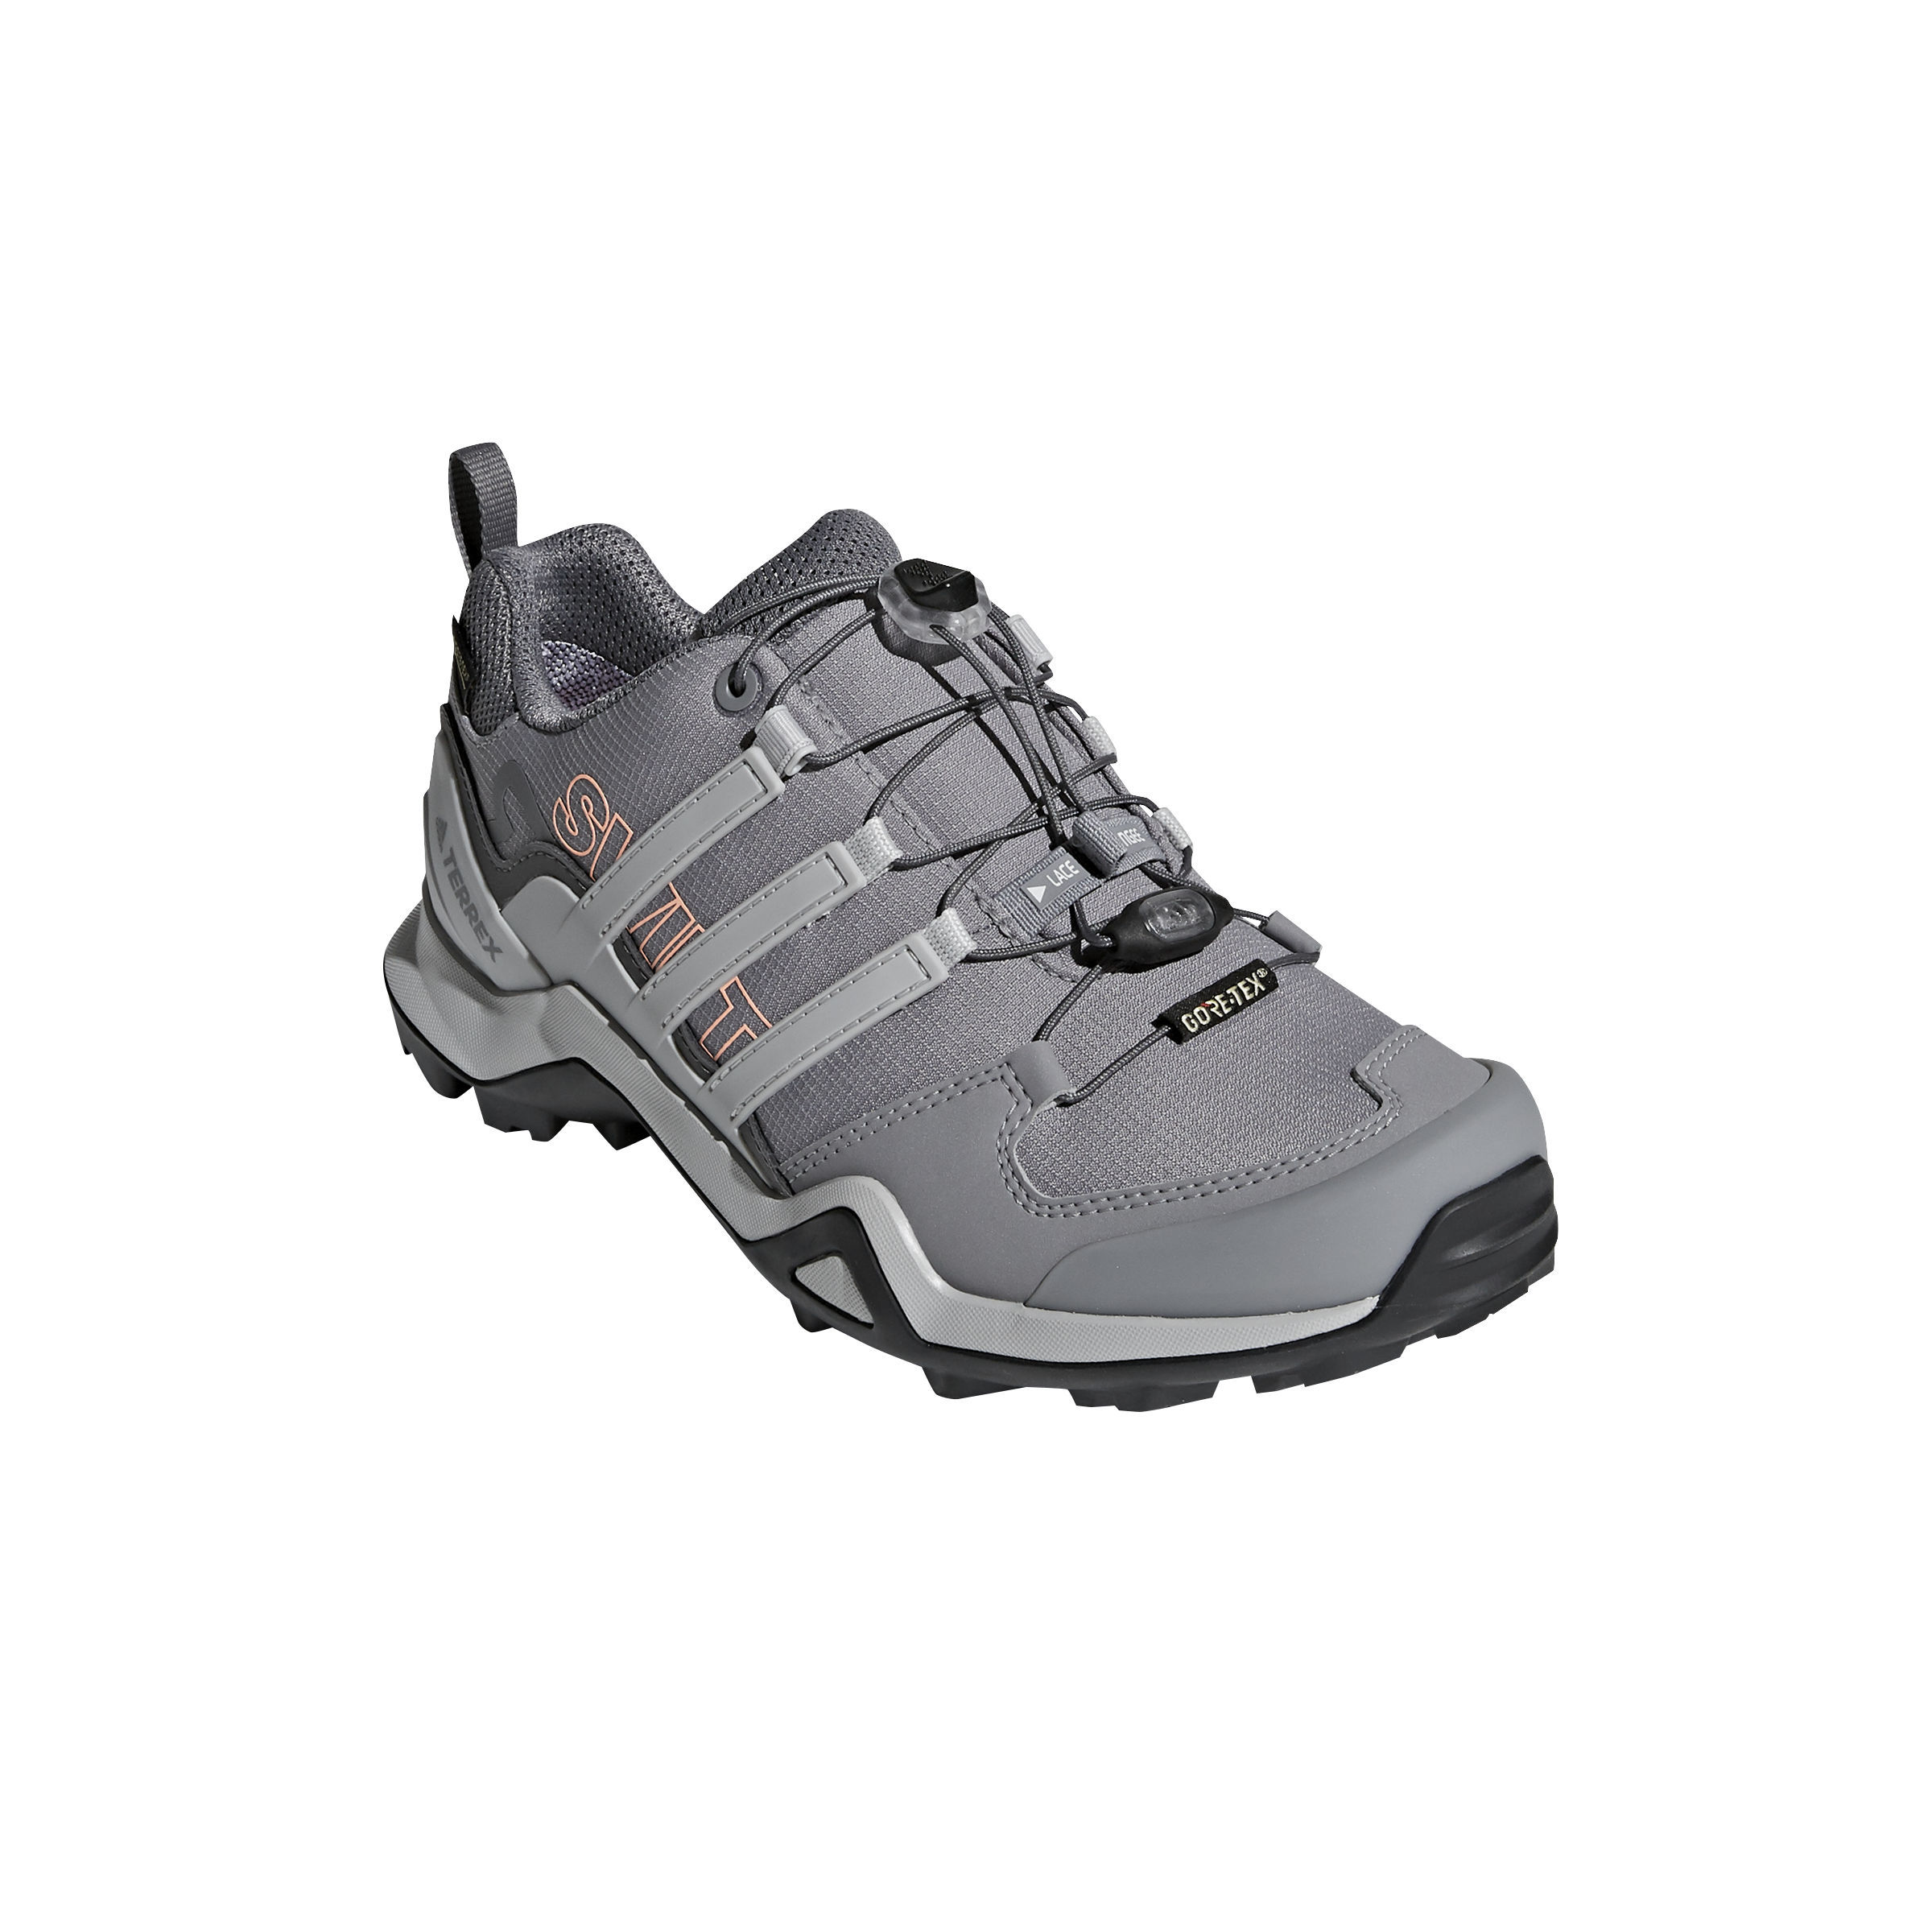 8cbb4faf8a7d Adidas Outdoor Terrex Swift R2 GTX Hiking Shoe - Women s